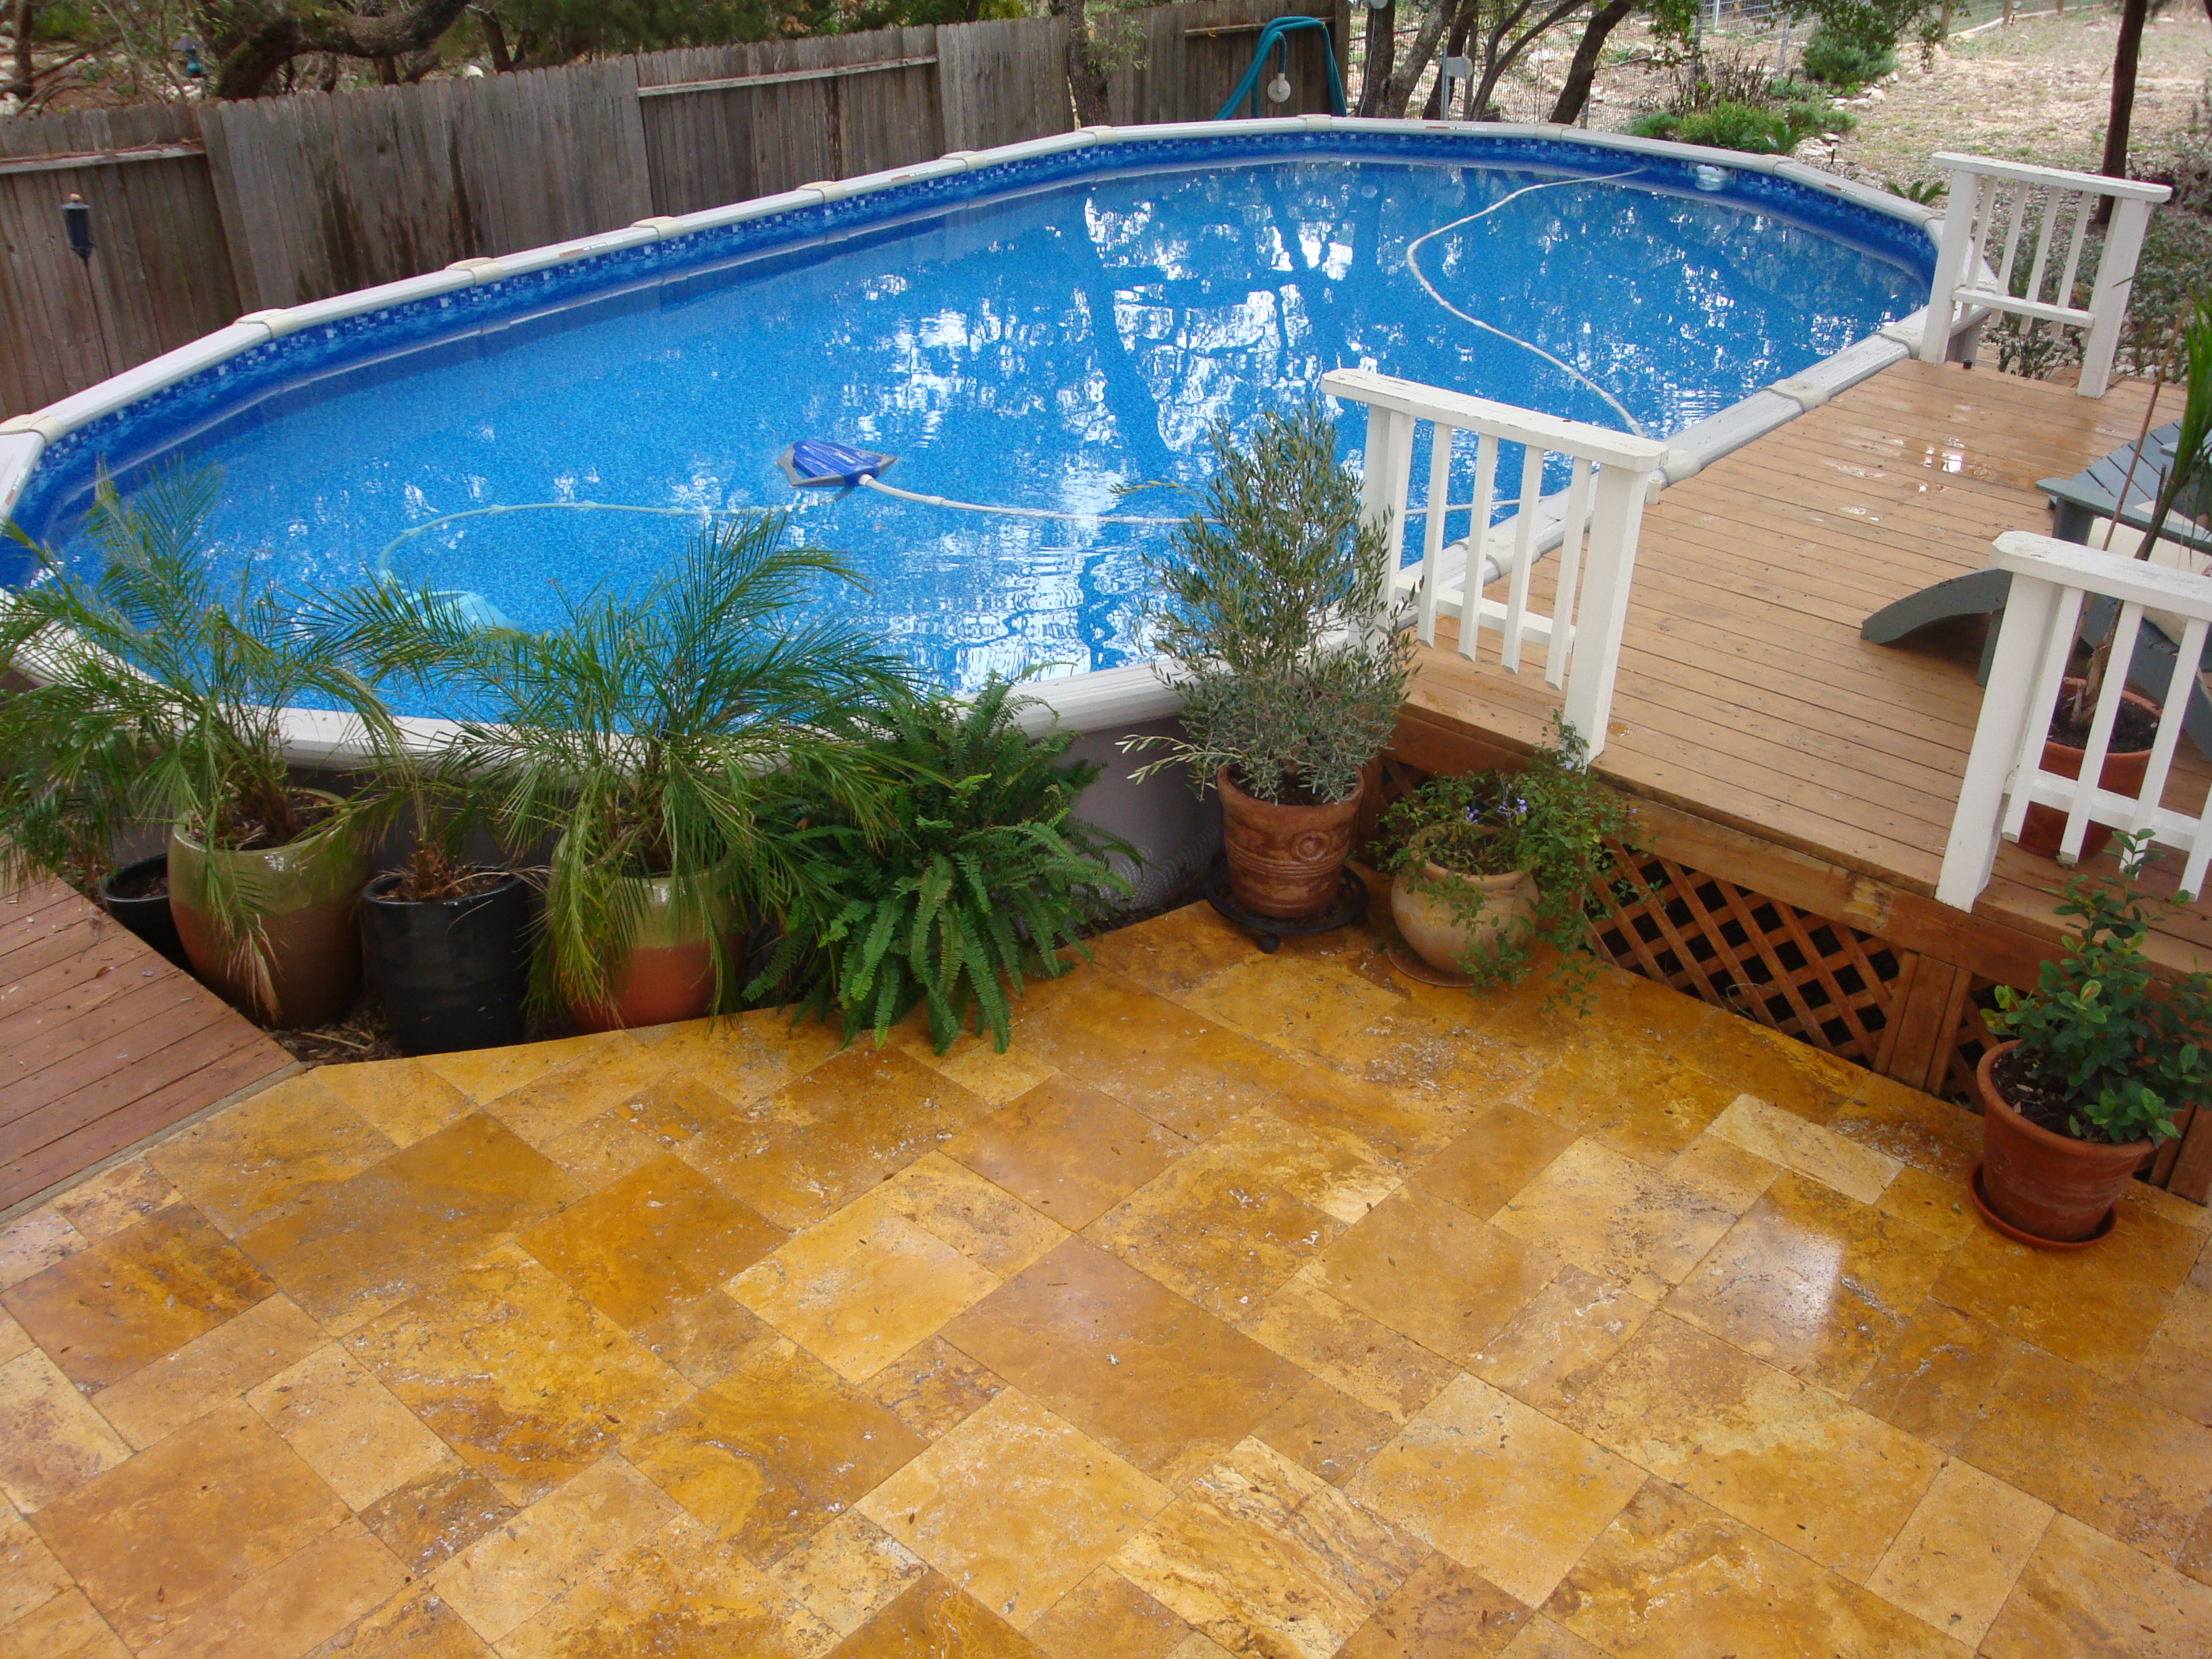 Backyard ideas with above ground pools - Backyard Above Ground Pool Ideas